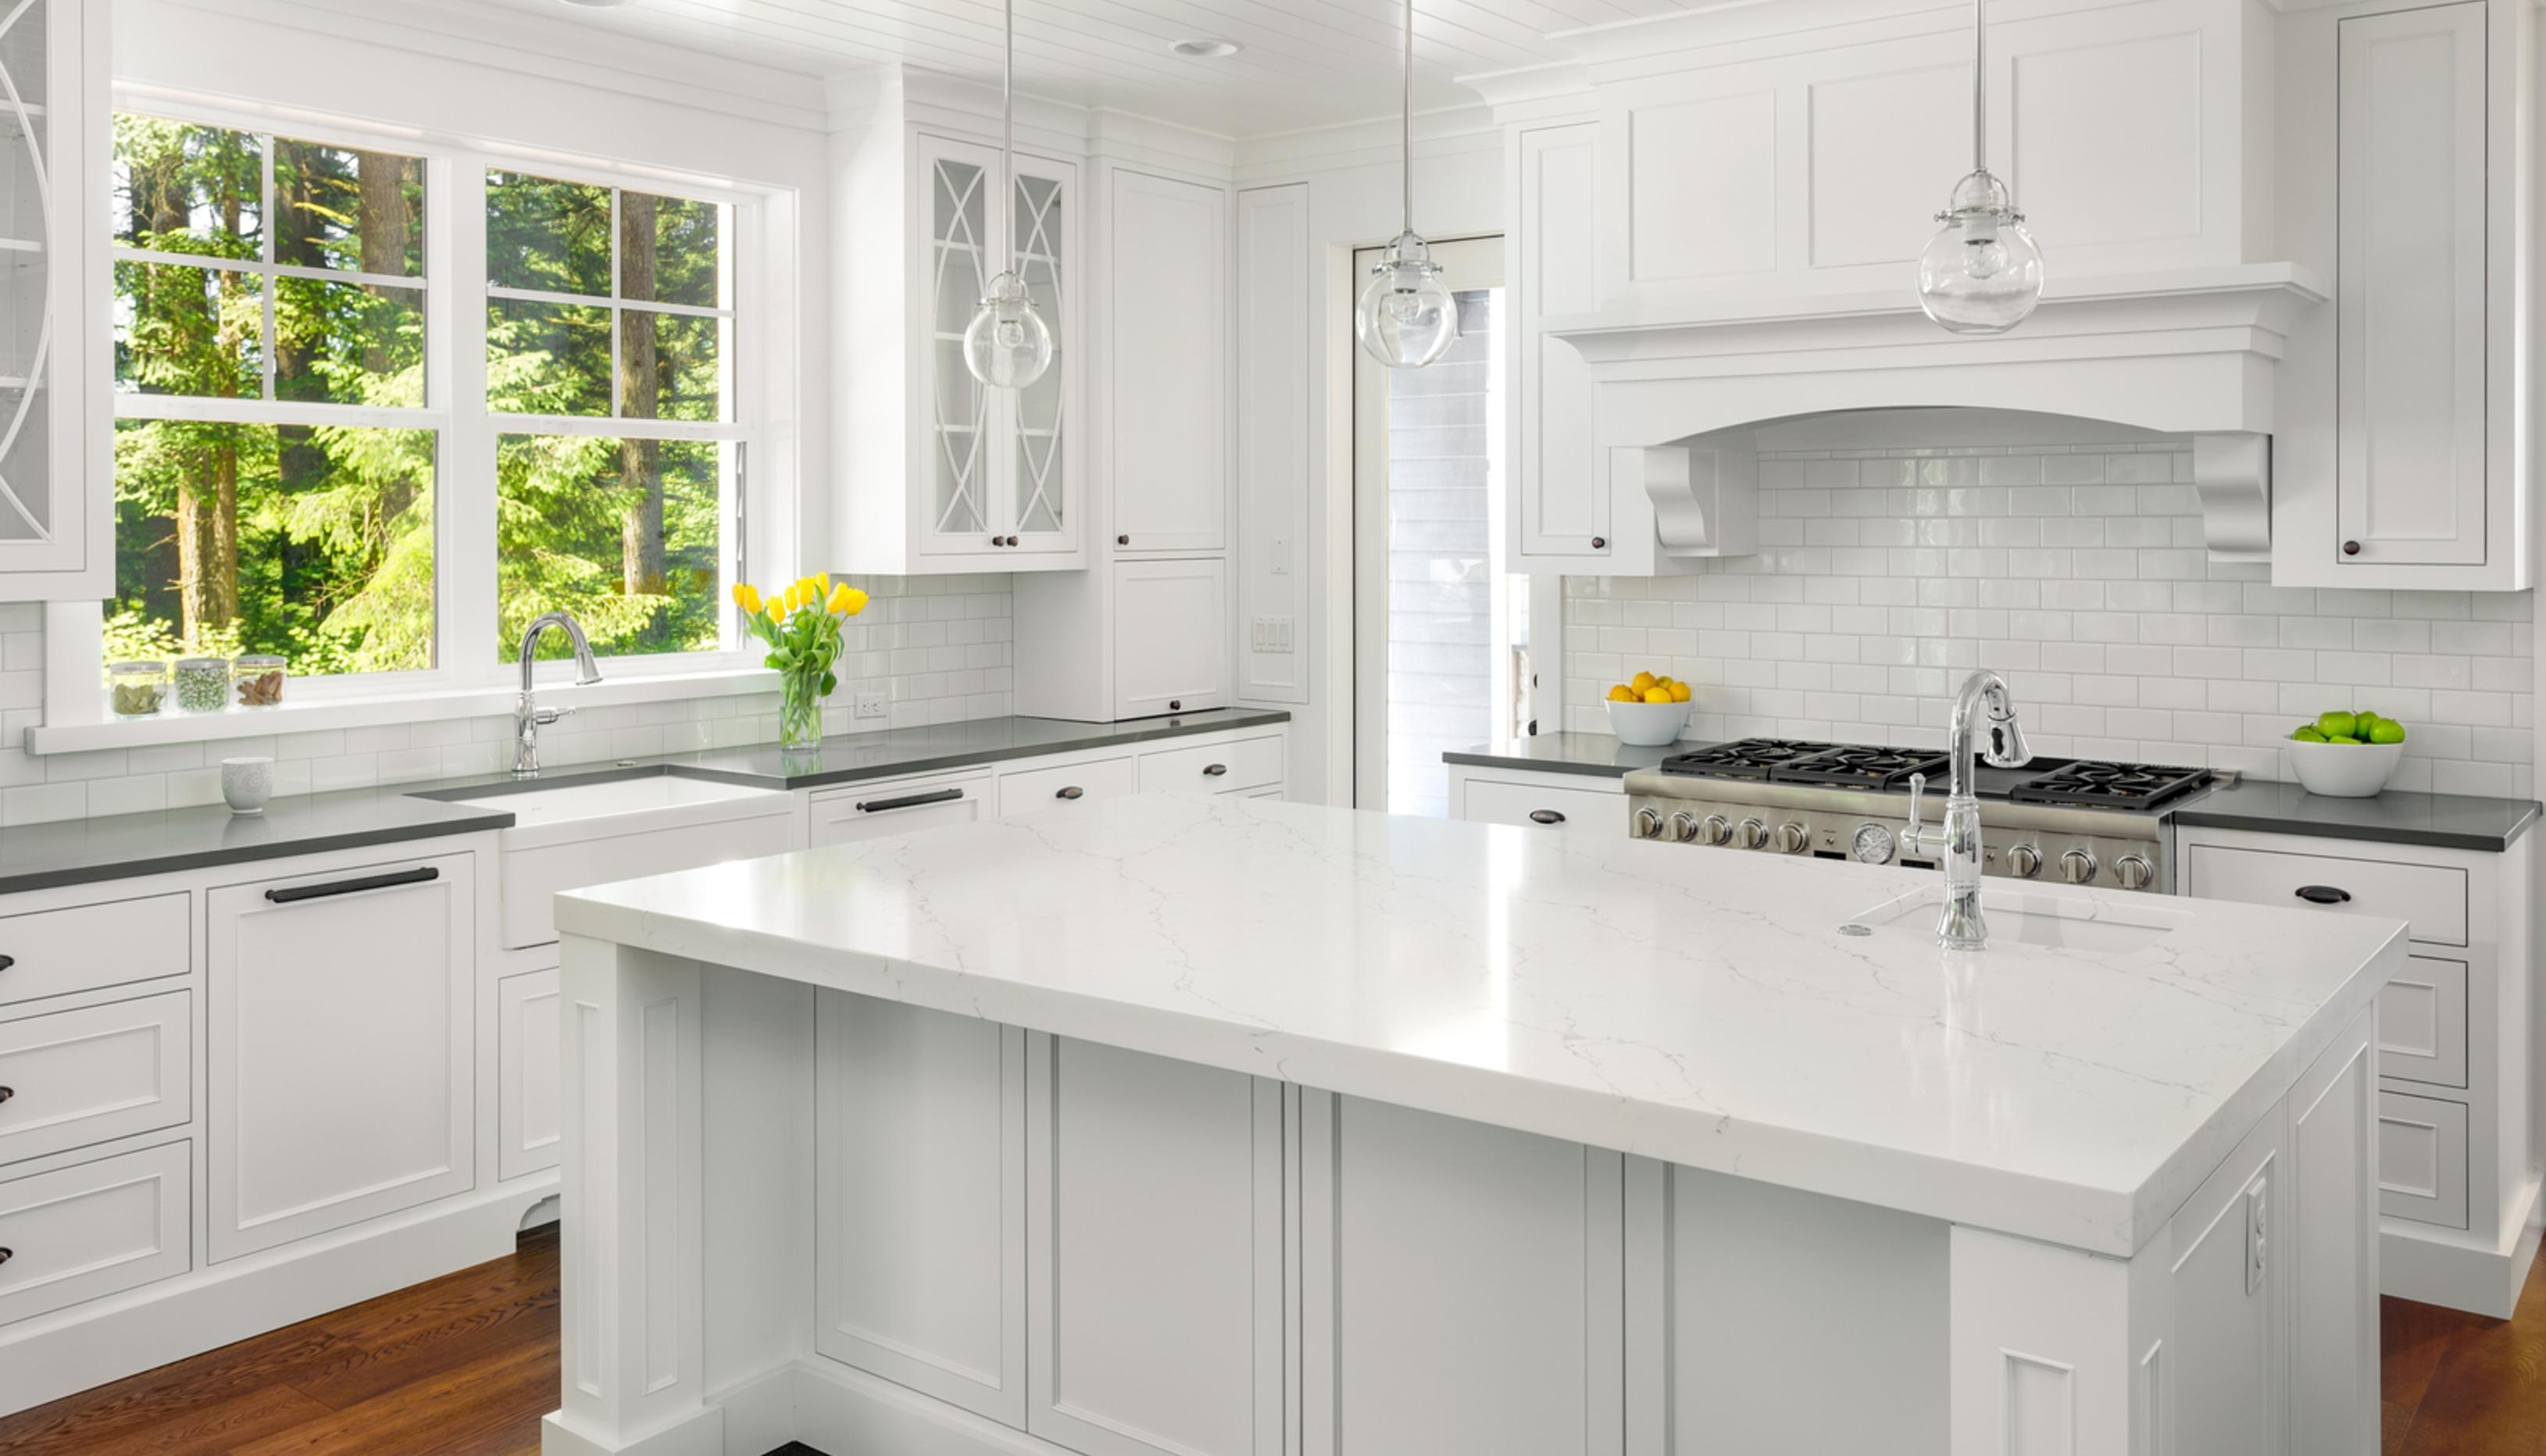 newly painted kitchen cabinets Seattle WA